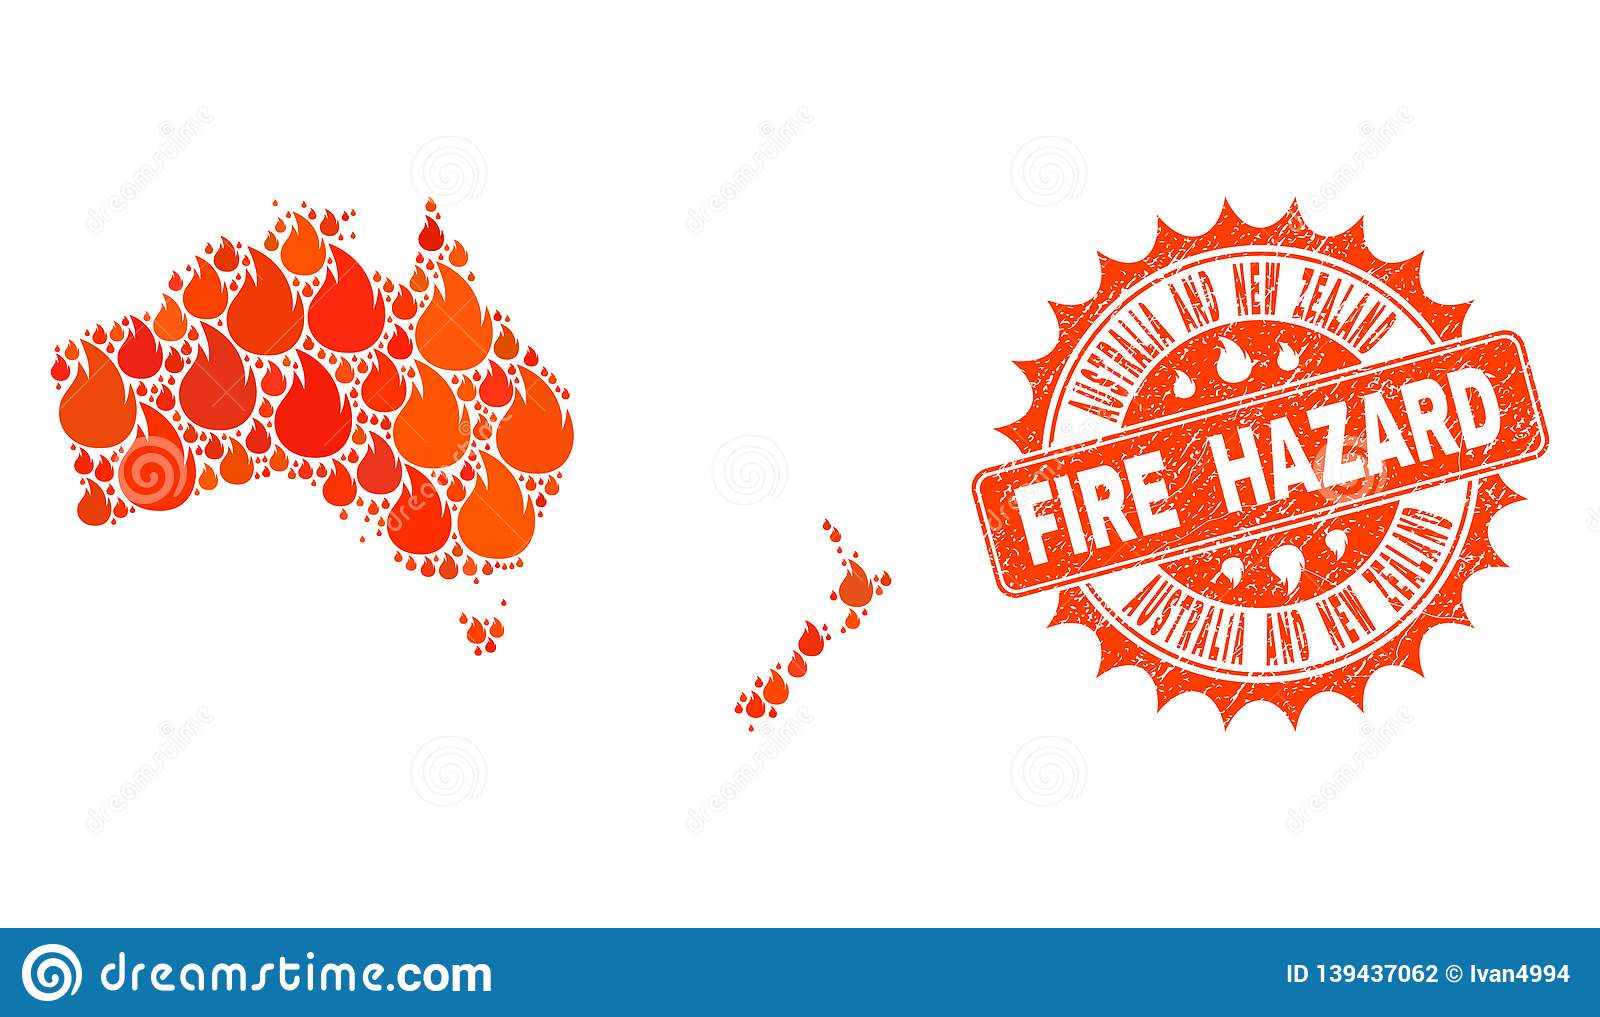 Collage Of Map Of Australia And New Zealand Burning And Fire Hazard ...